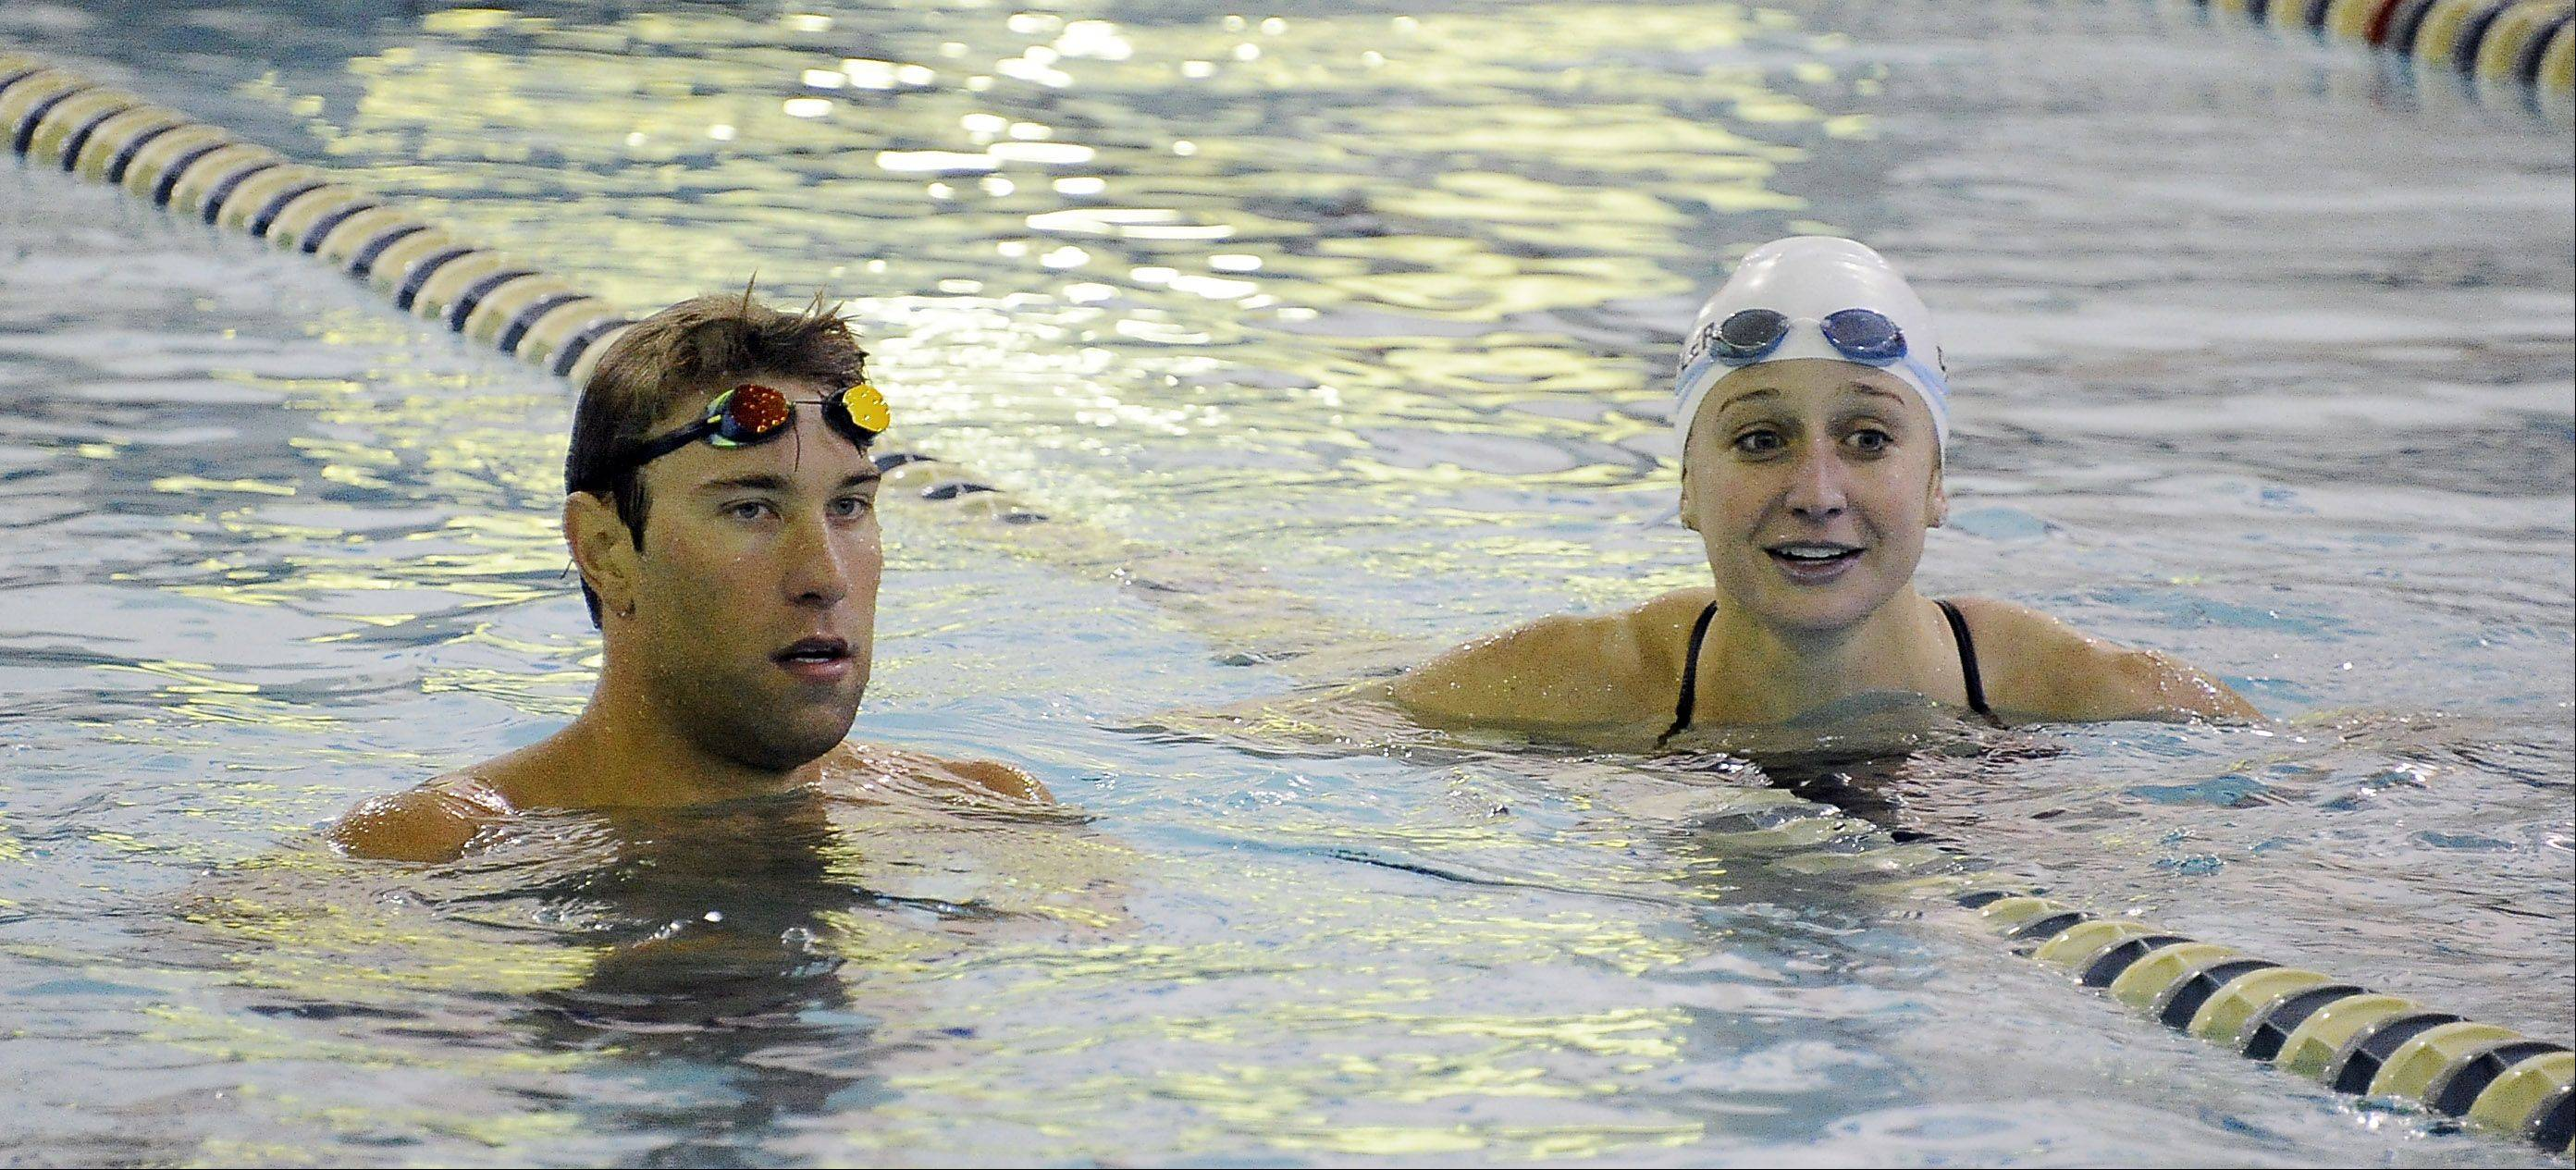 Olympic gold medalist Matt Grevers, with his fiancee Annie Chandler, gives personal instruction to the dozens of kids who attended his swimming clinic at Buehler YMCA on Saturday.